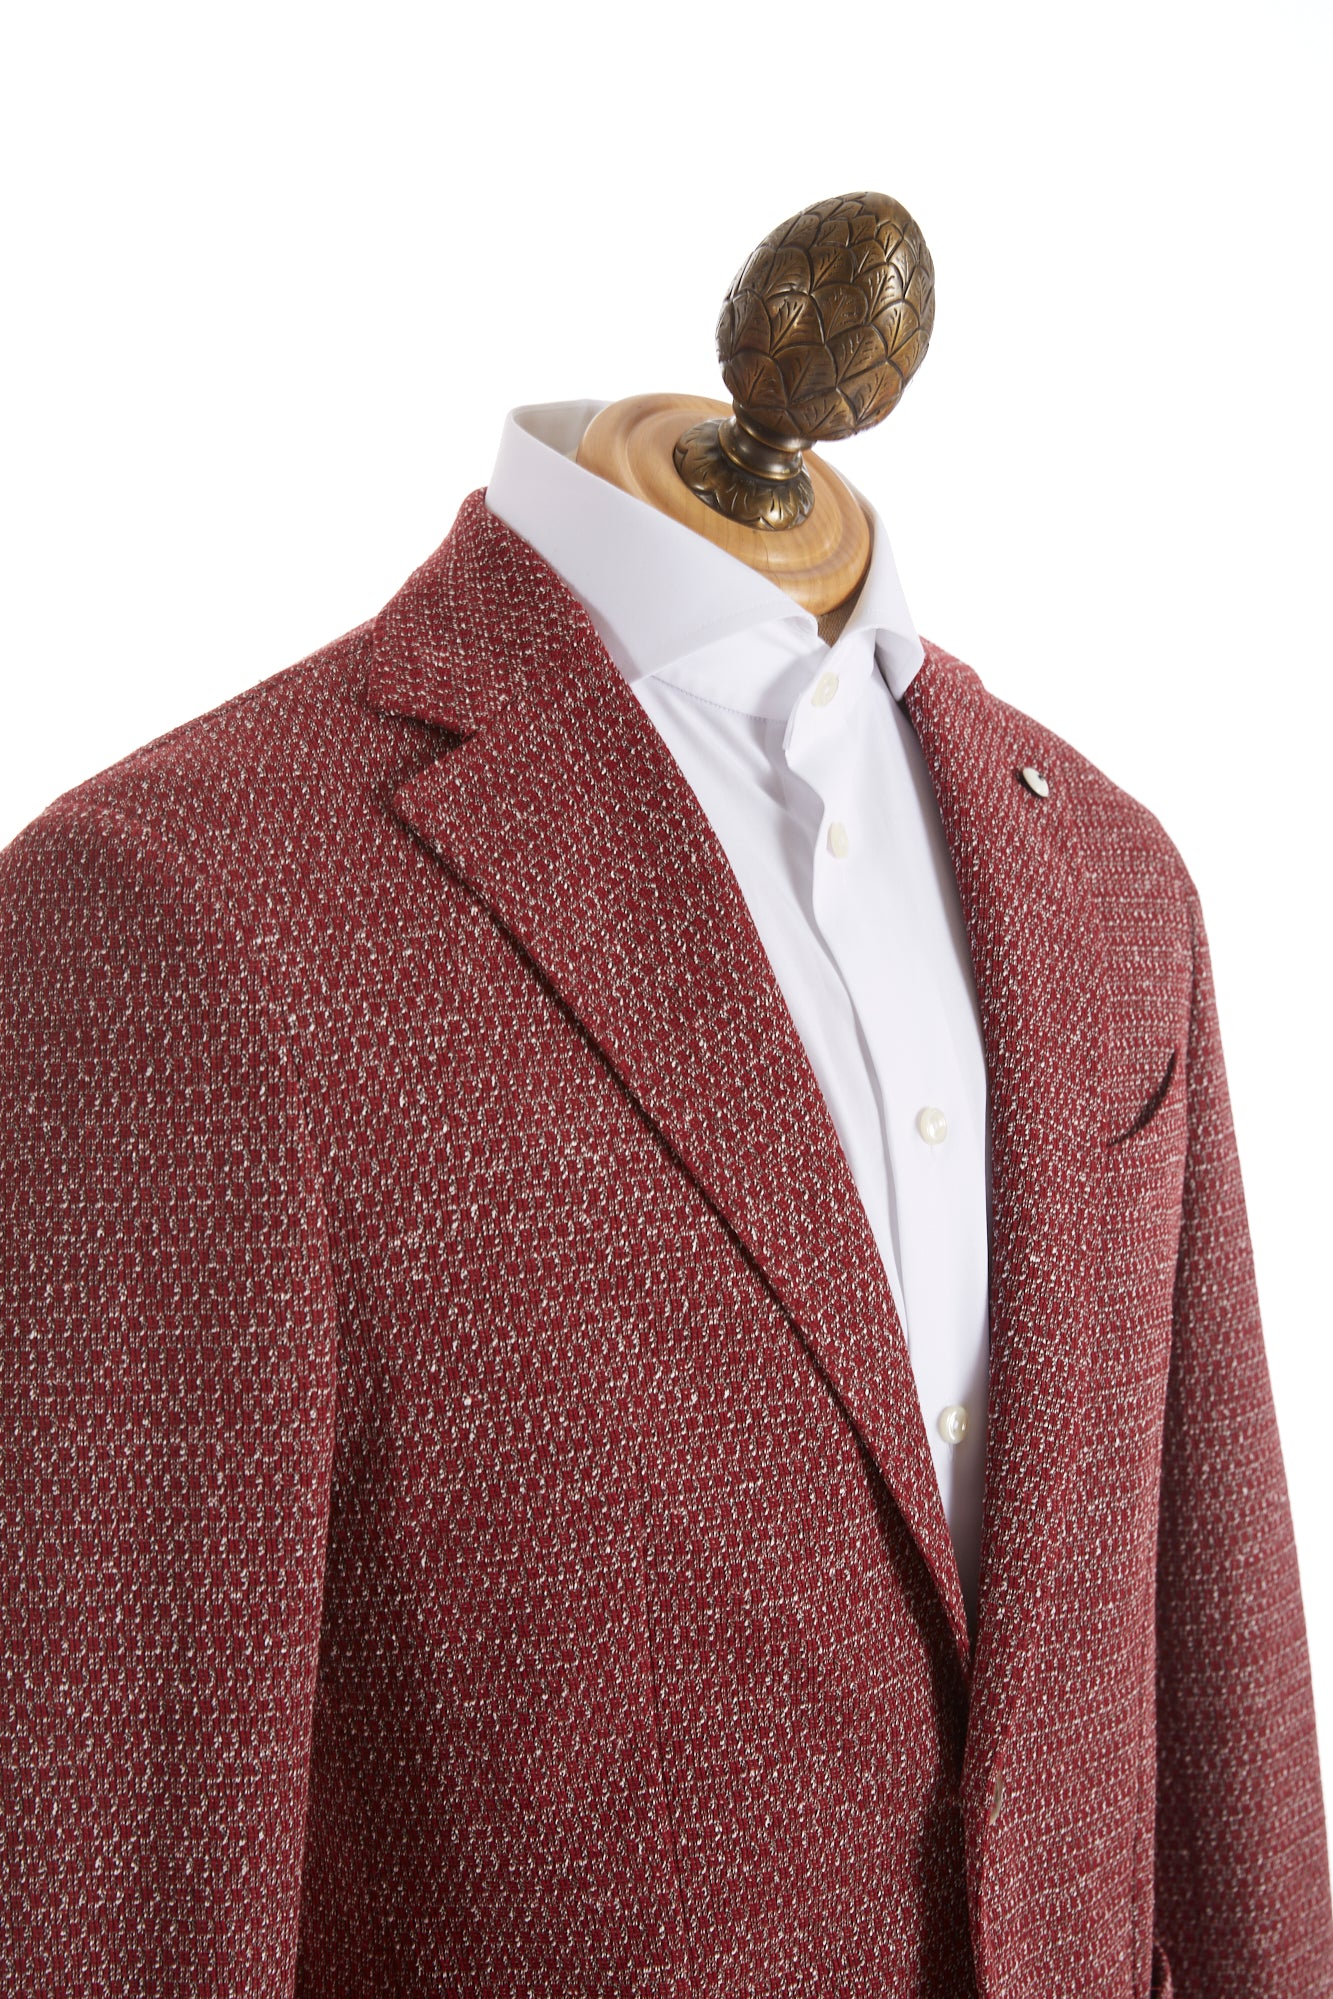 L.B.M. 1911 Red Marled Stretch Sport Jacket - Sport Jackets - L.B.M. 1911 - LALONDE's